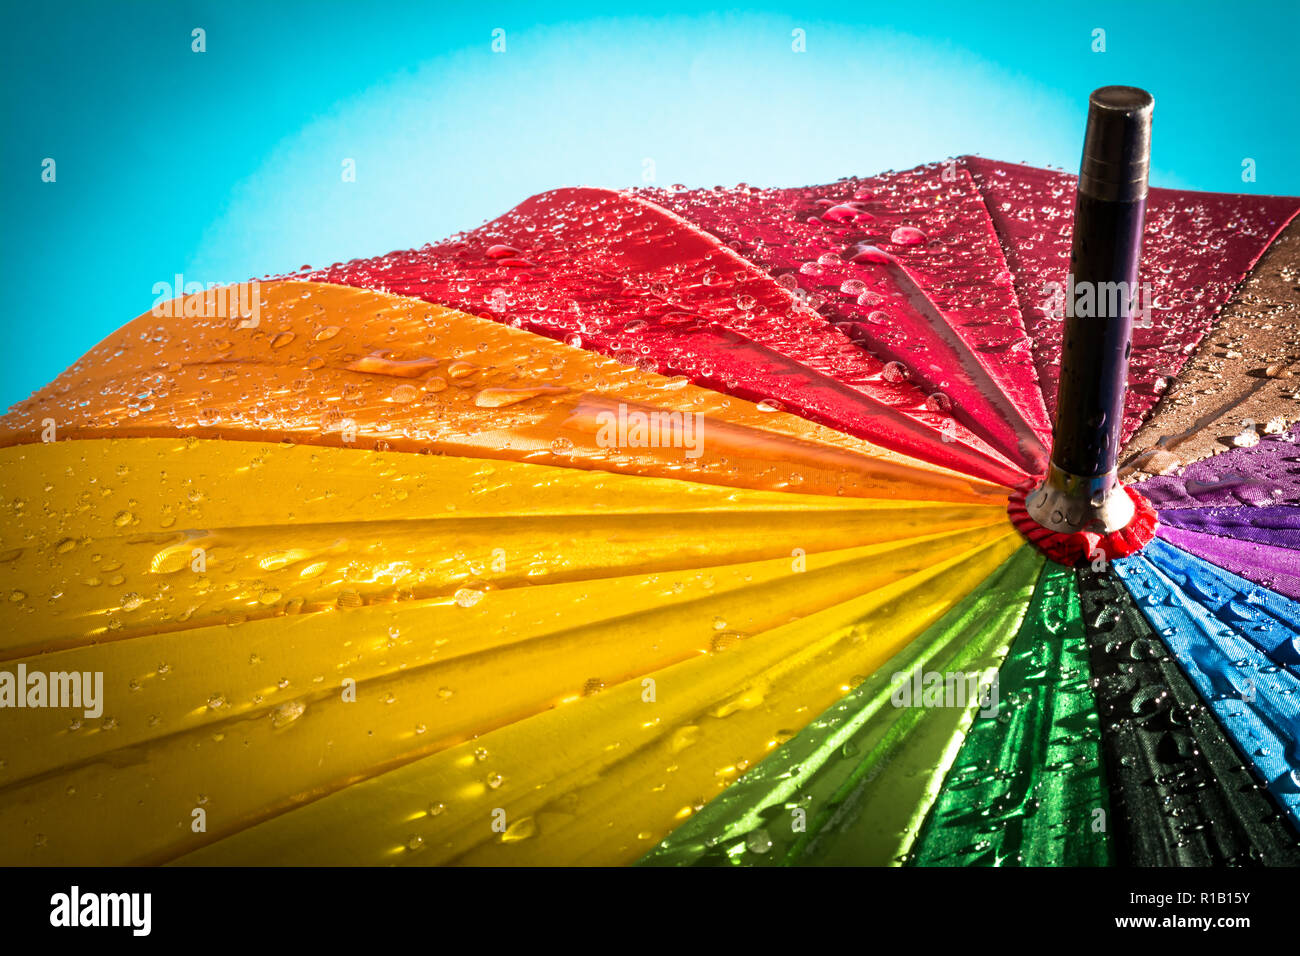 Multi-colored colorful umbrella with all colors of the rainbow with raindrops. Stock Photo